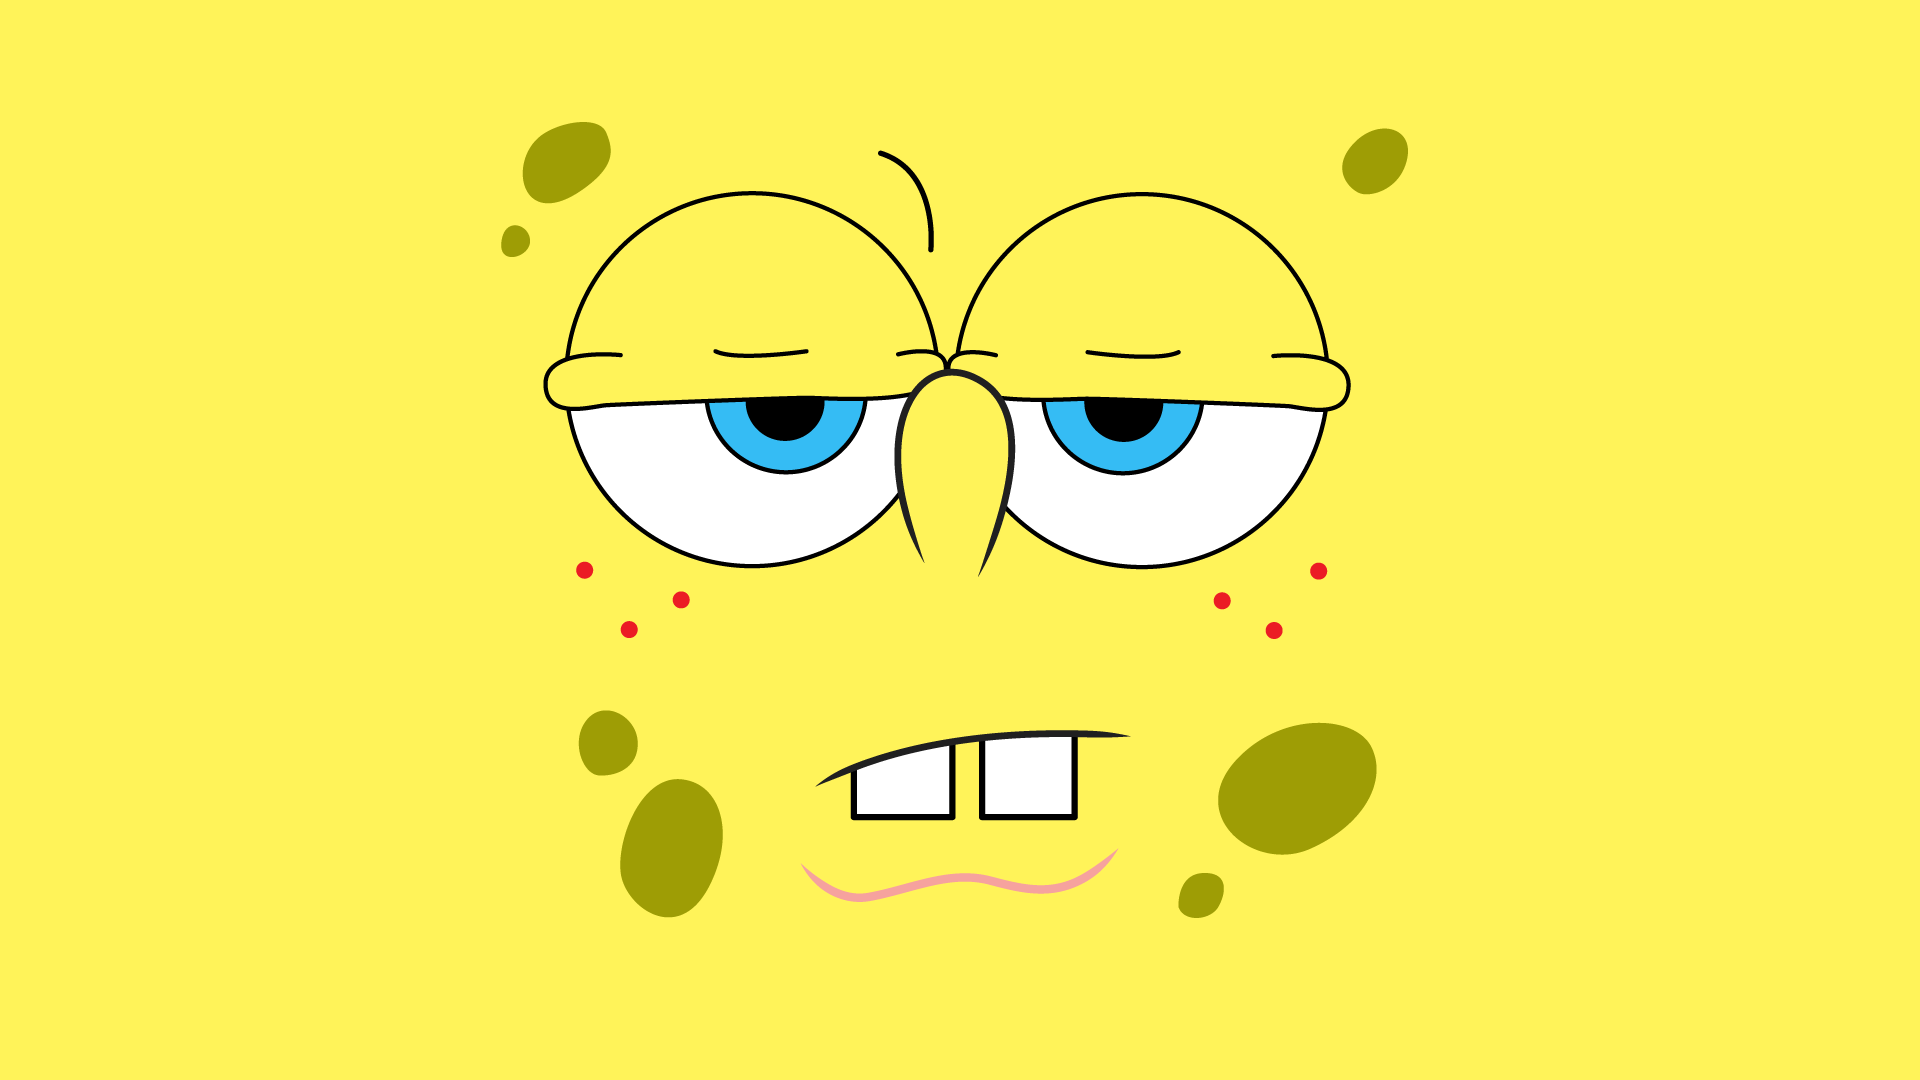 Spongebob Squarepants HD Wallpaper | Background Image | 1920x1080 | ID:914659 - Wallpaper Abyss